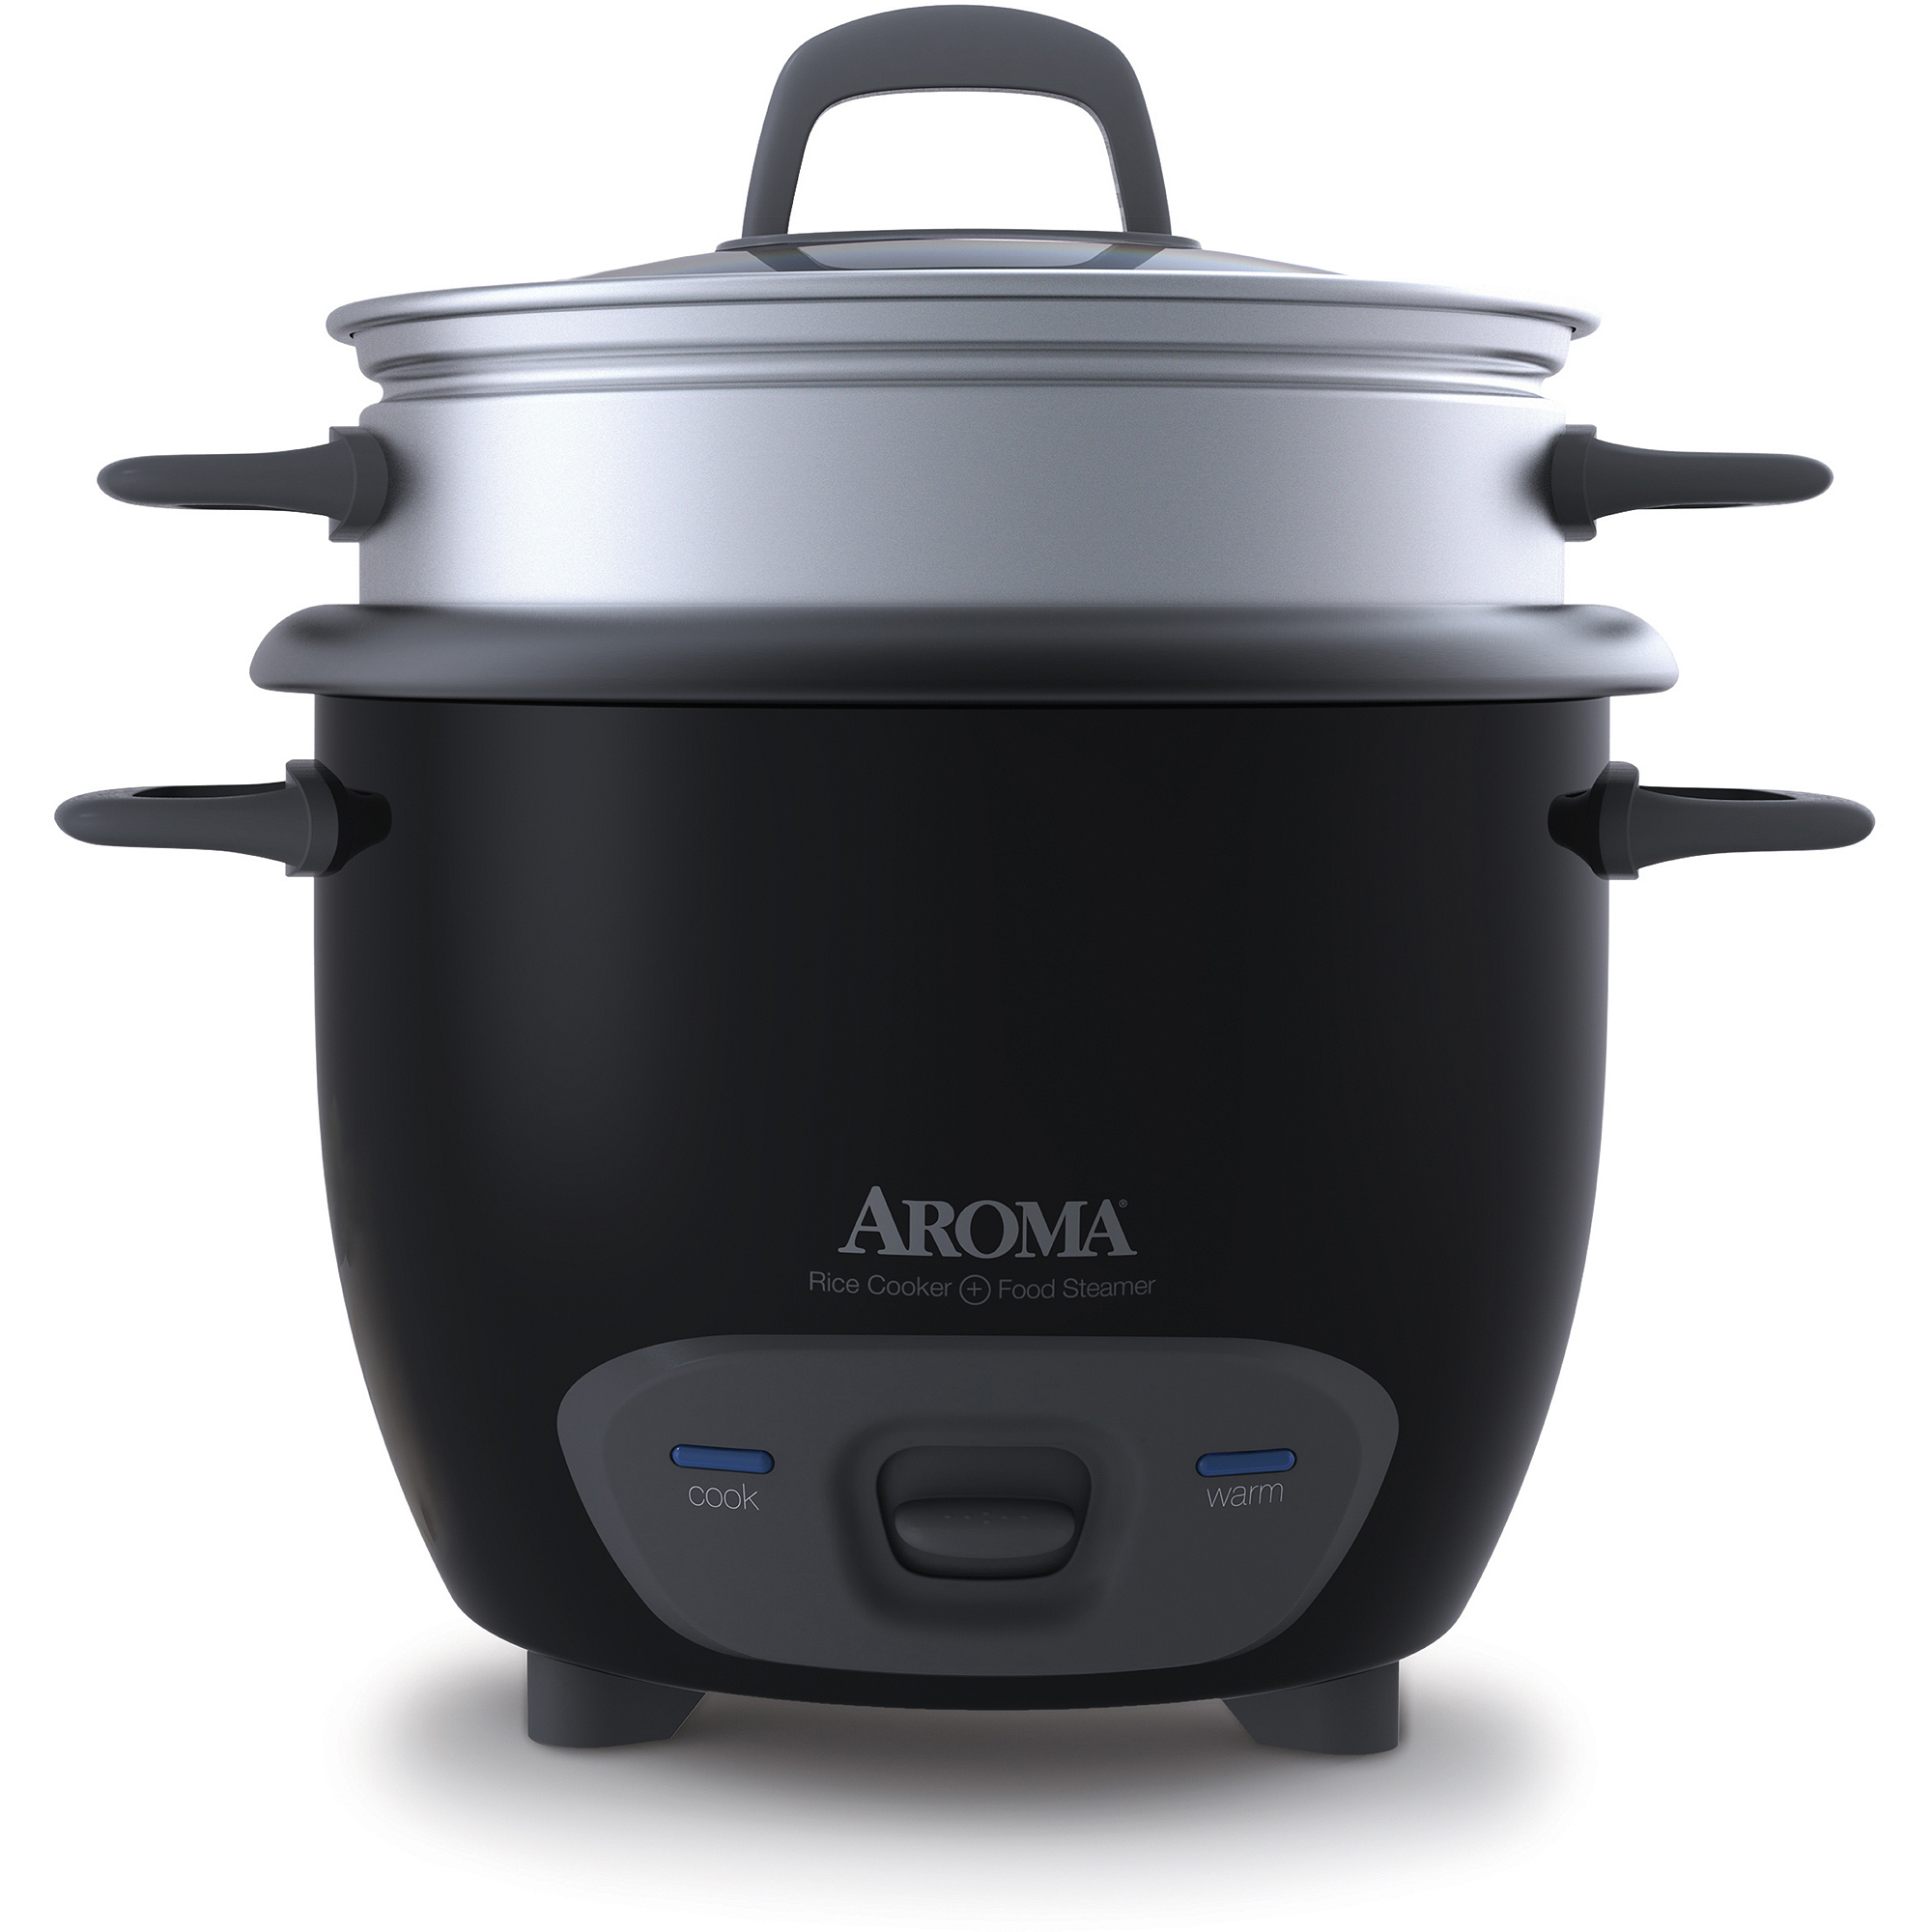 Aroma 6-Cup Pot-Style Rice Cooker and Food Steamer, Black